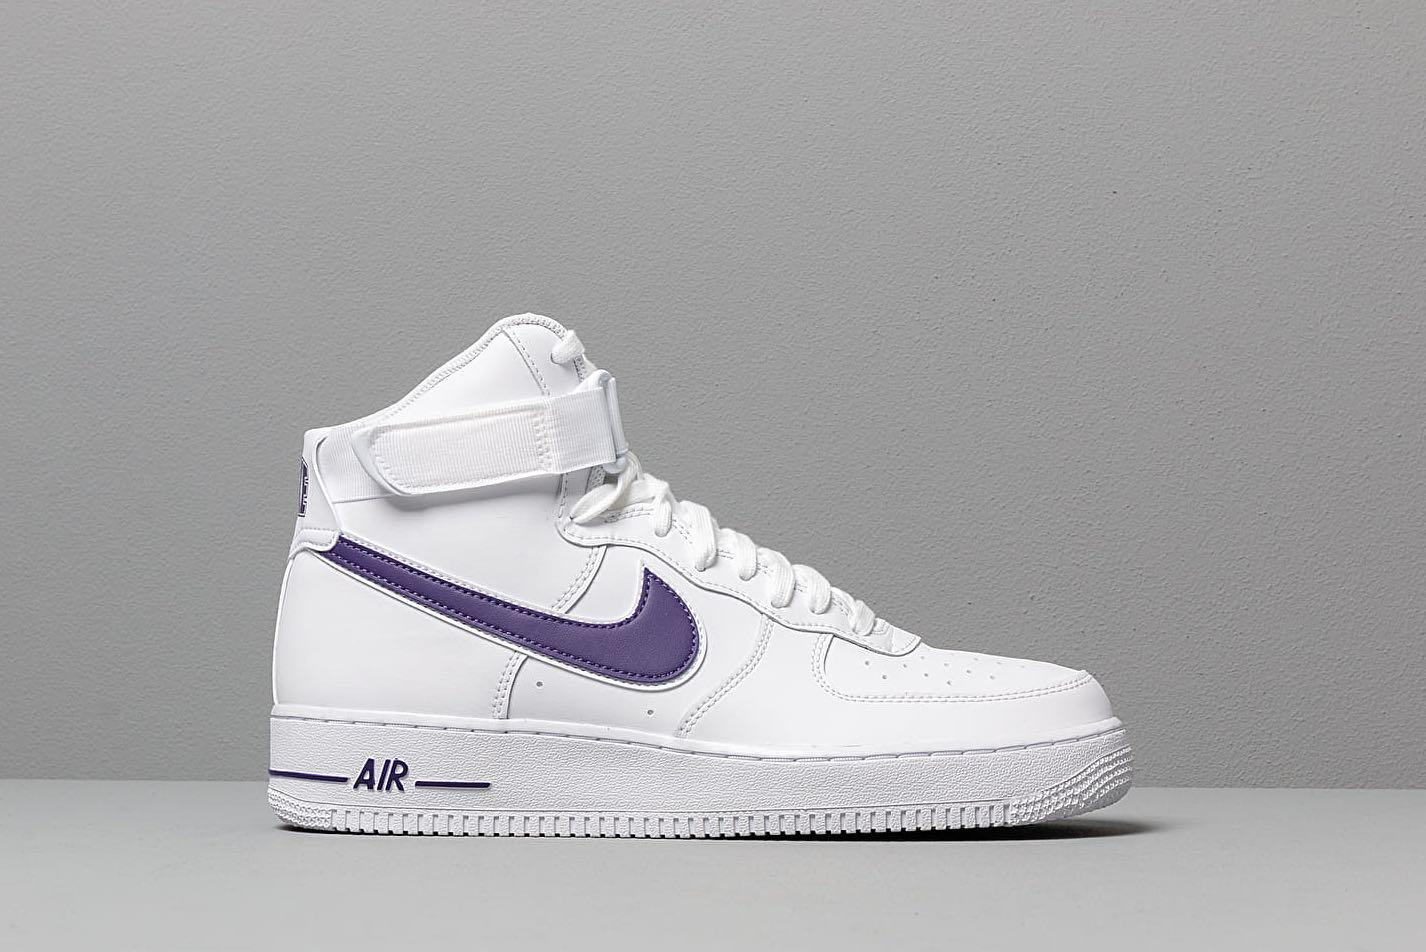 Nike Air Force 1 white with purple